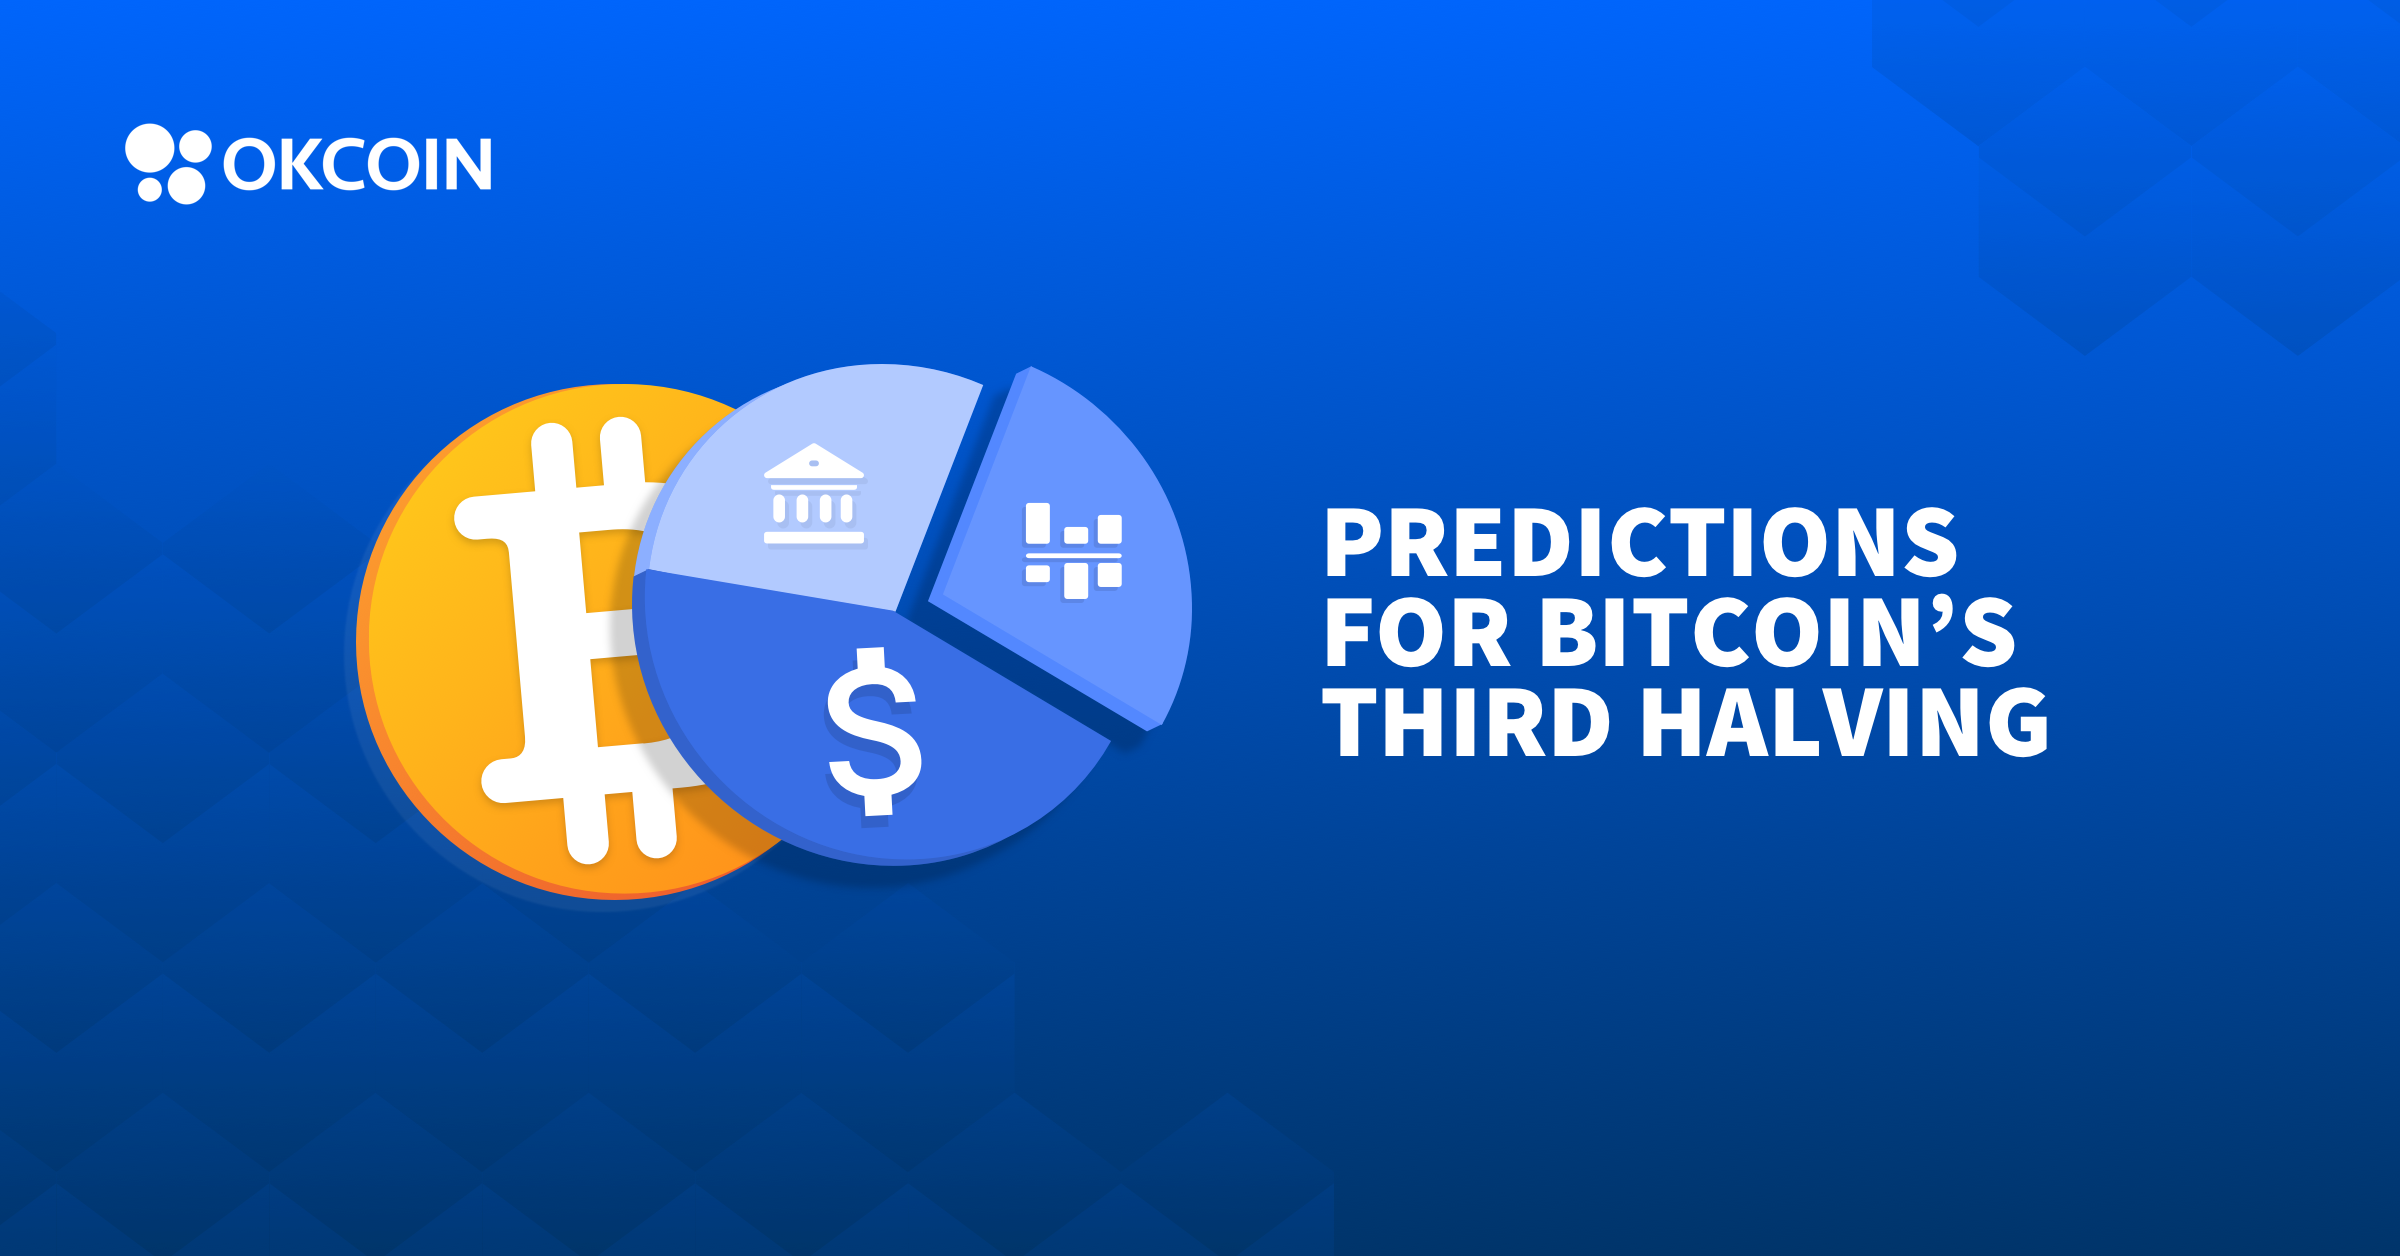 Predictions for Bitcoin's Third Halving